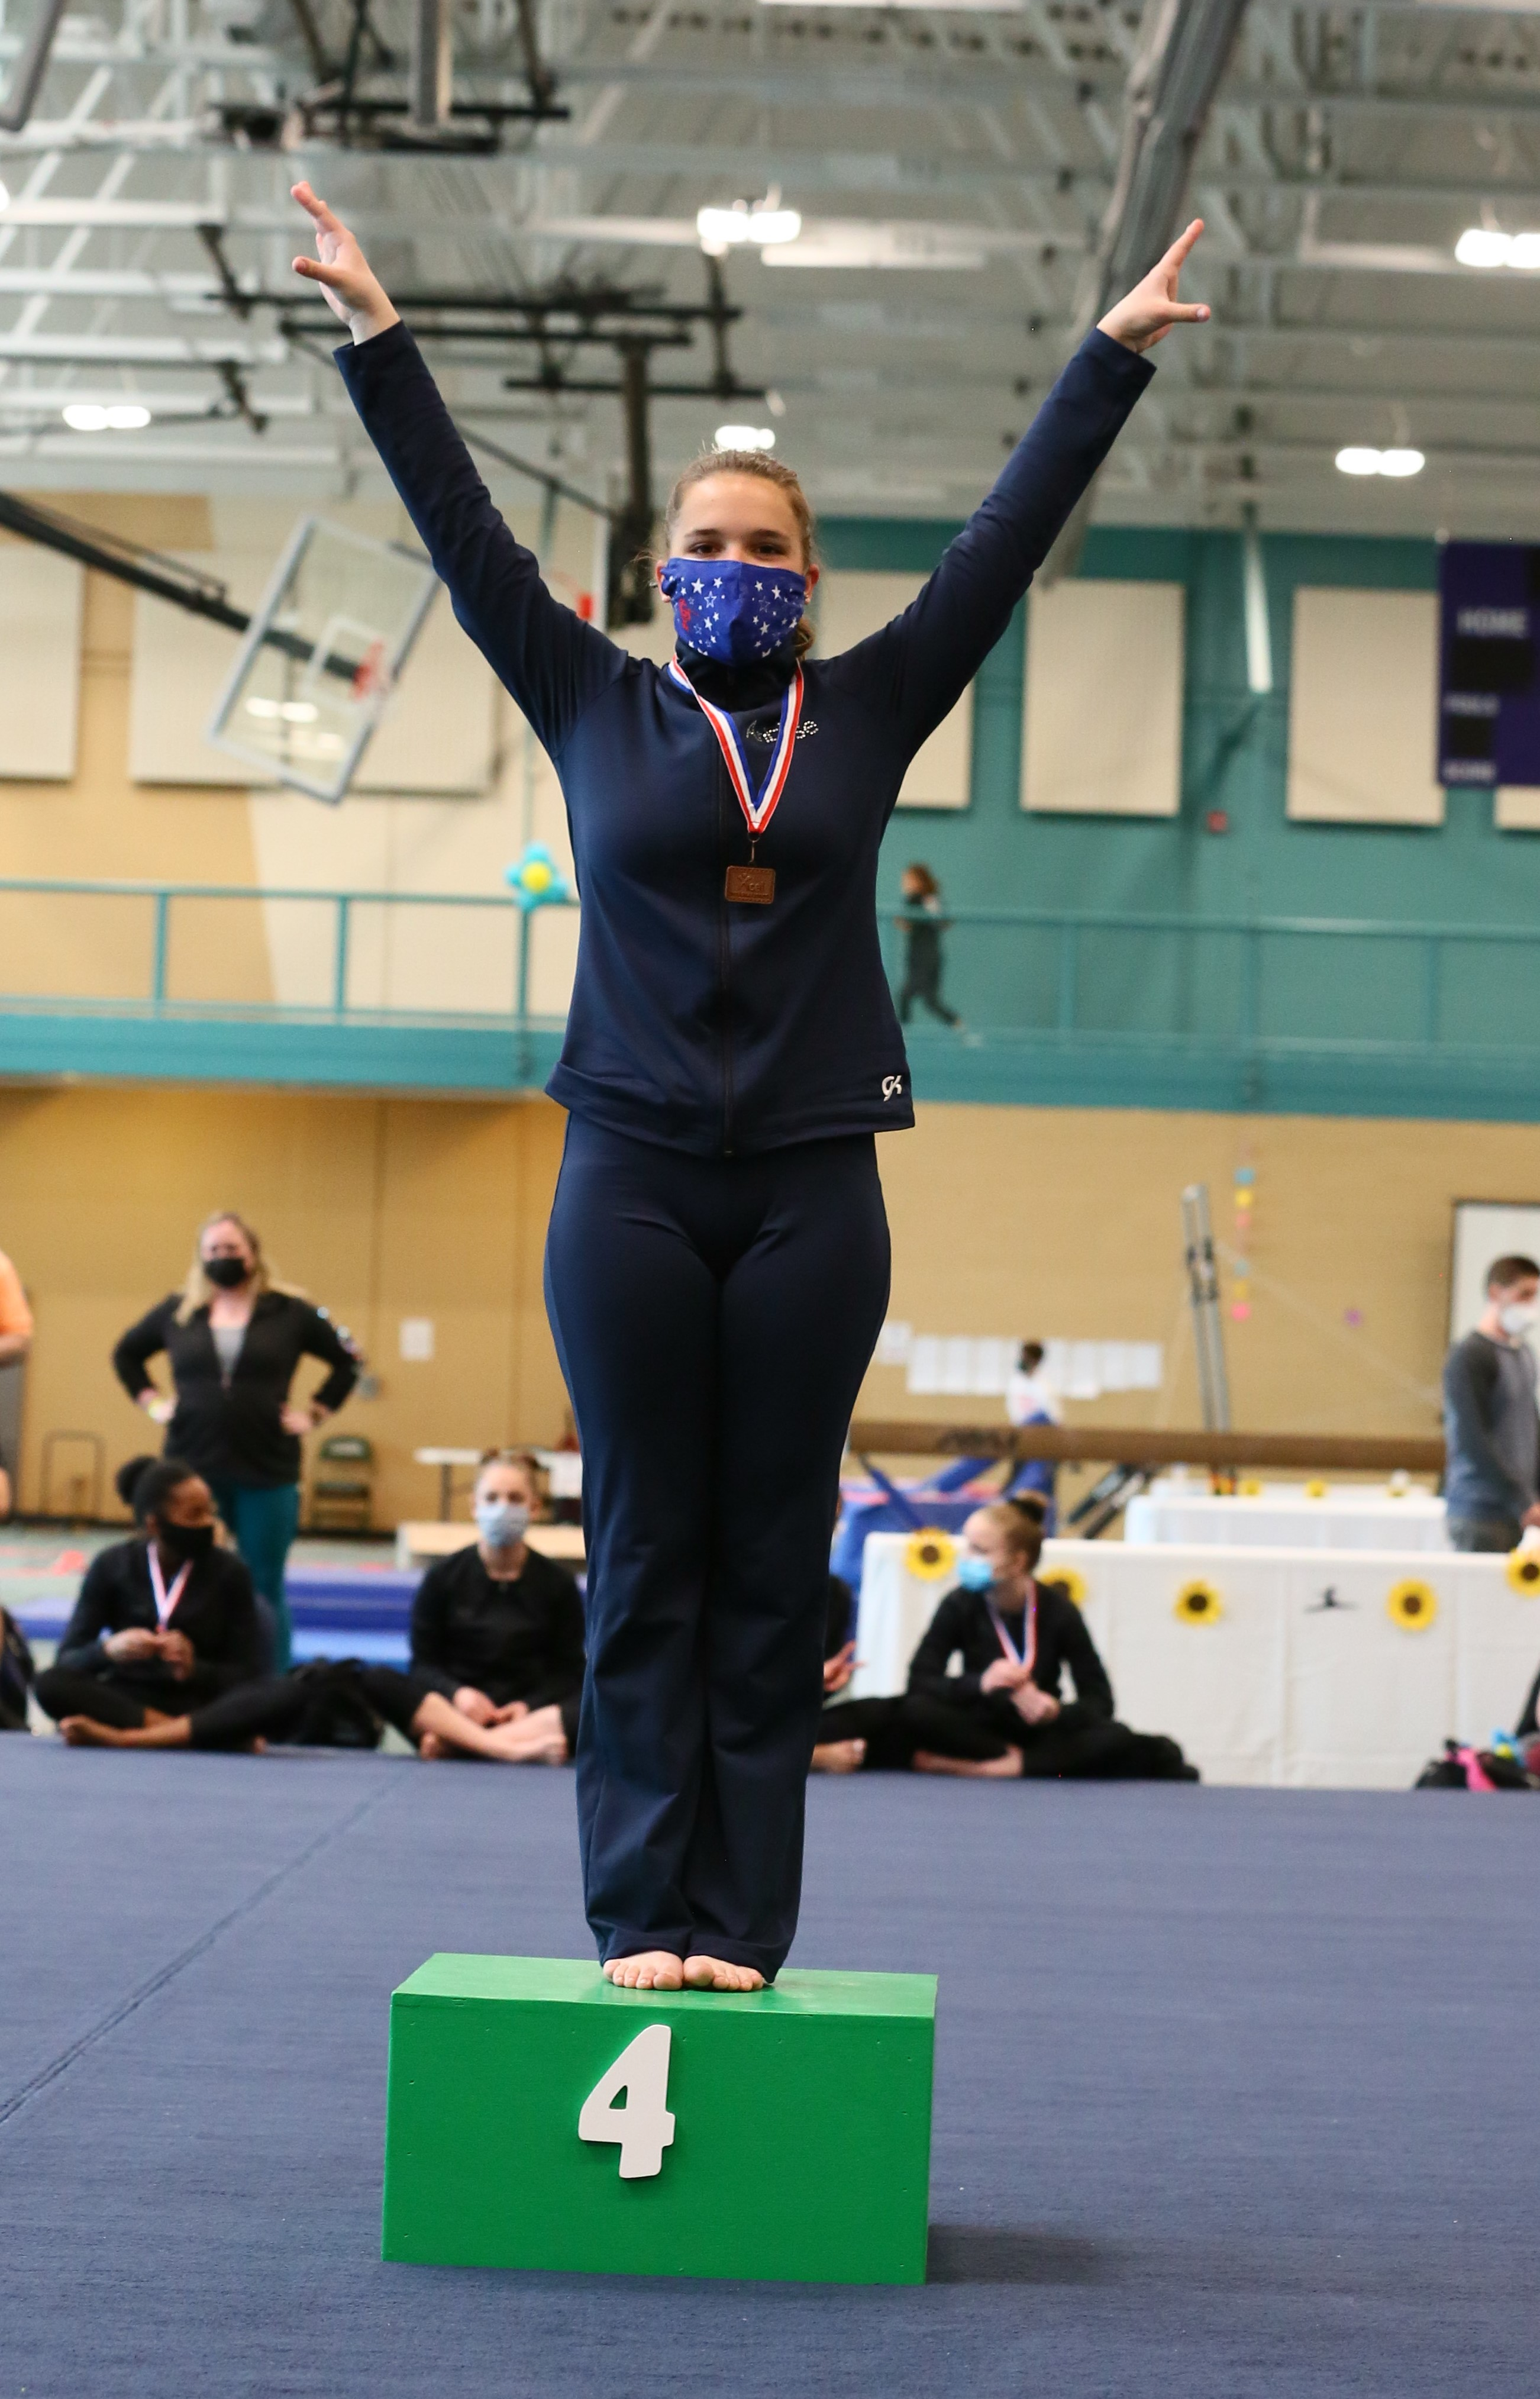 Armington Gymnast Places 4th at State